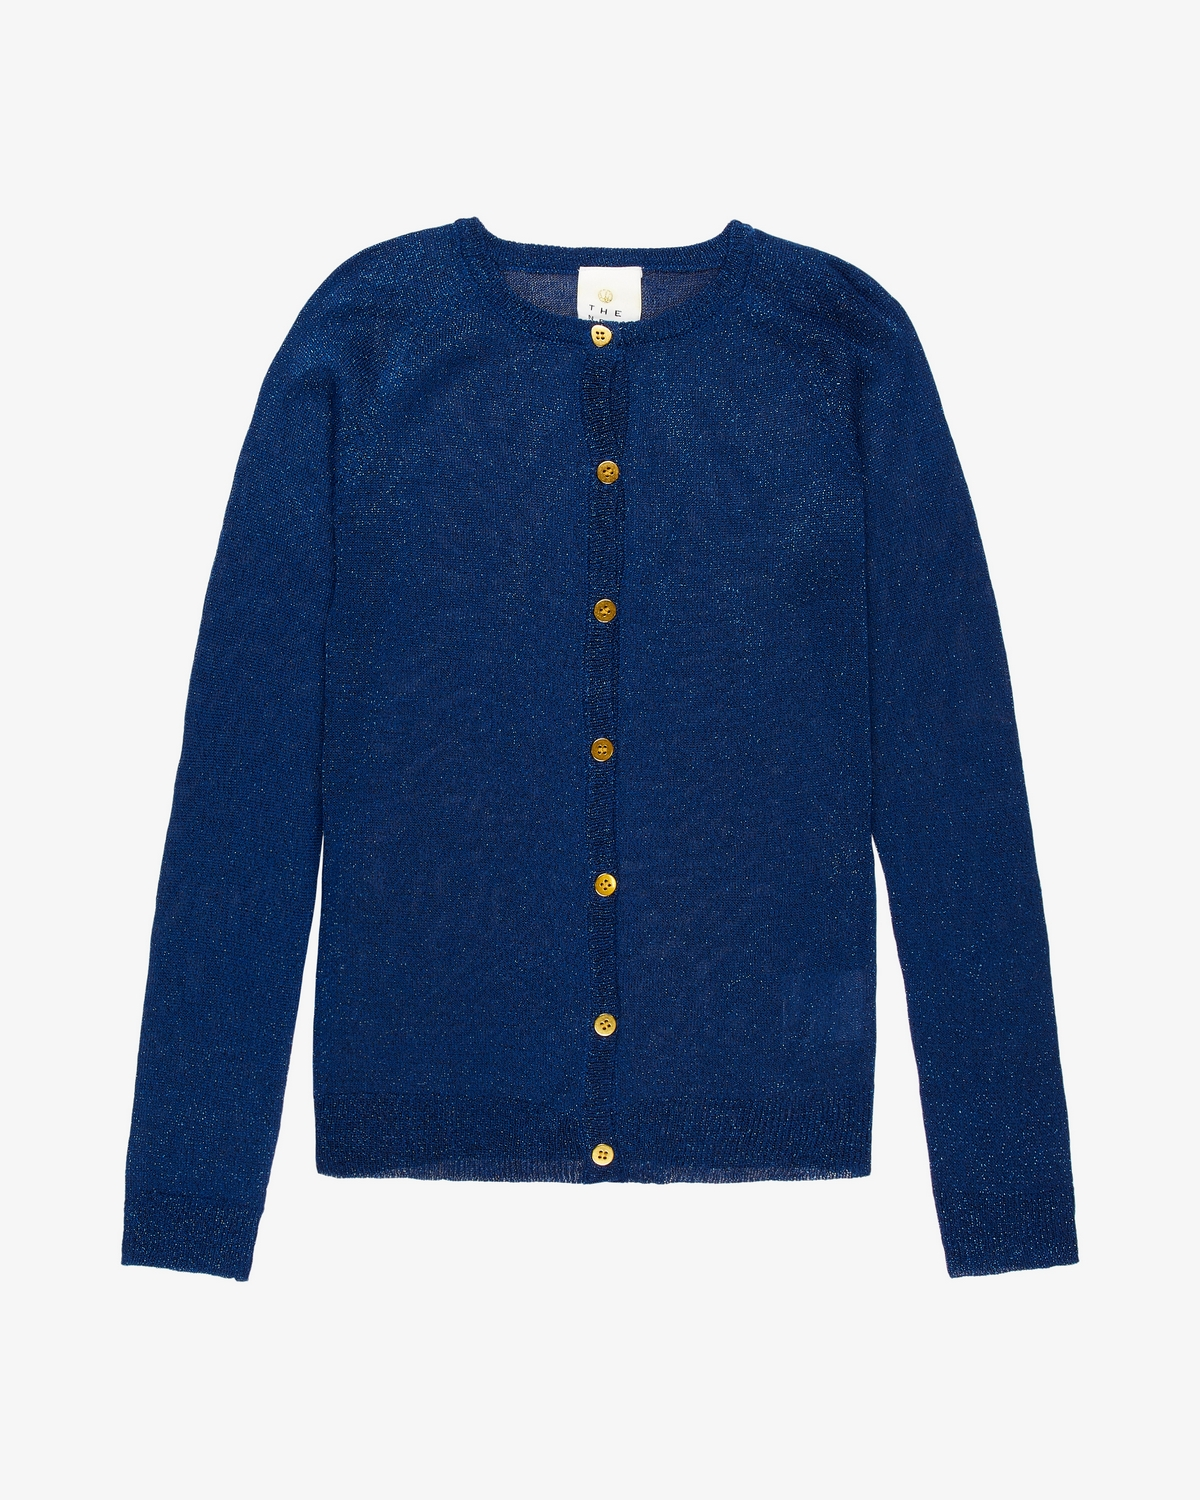 THE NEW Aya cardigan